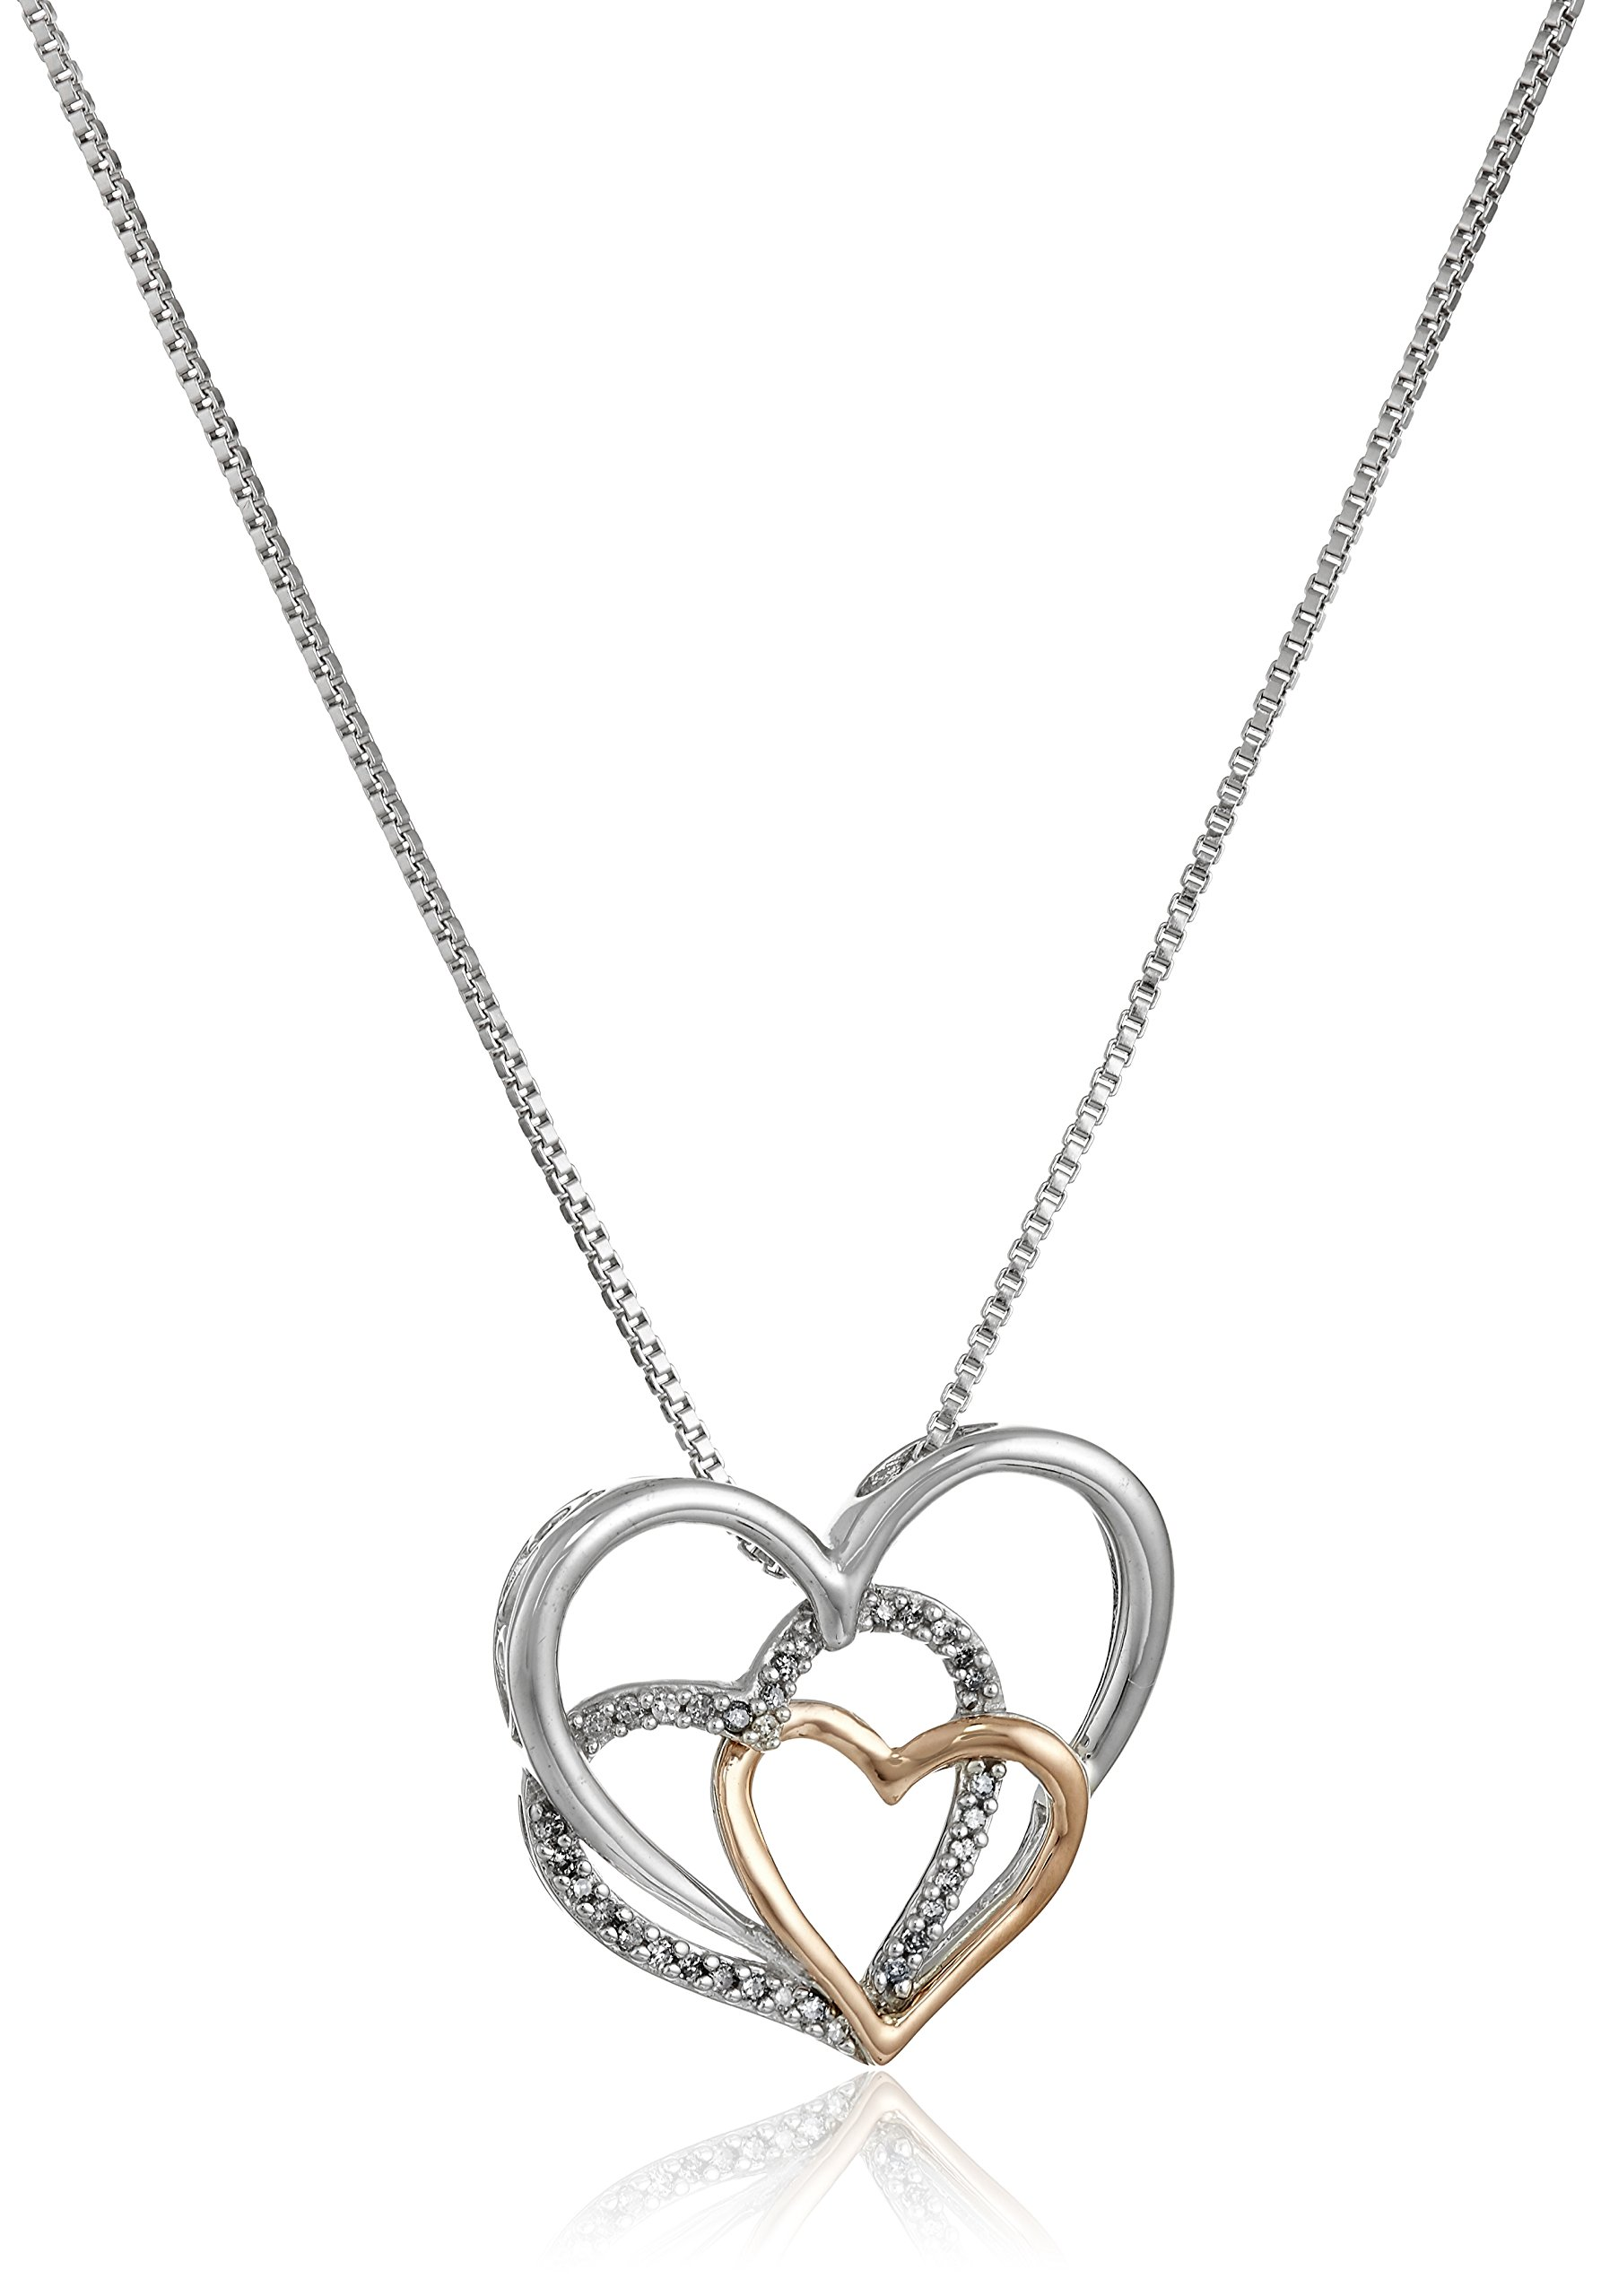 Sterling Silver and 14k Rose Gold Diamond Accent Triple Heart Pendant Necklace,18''